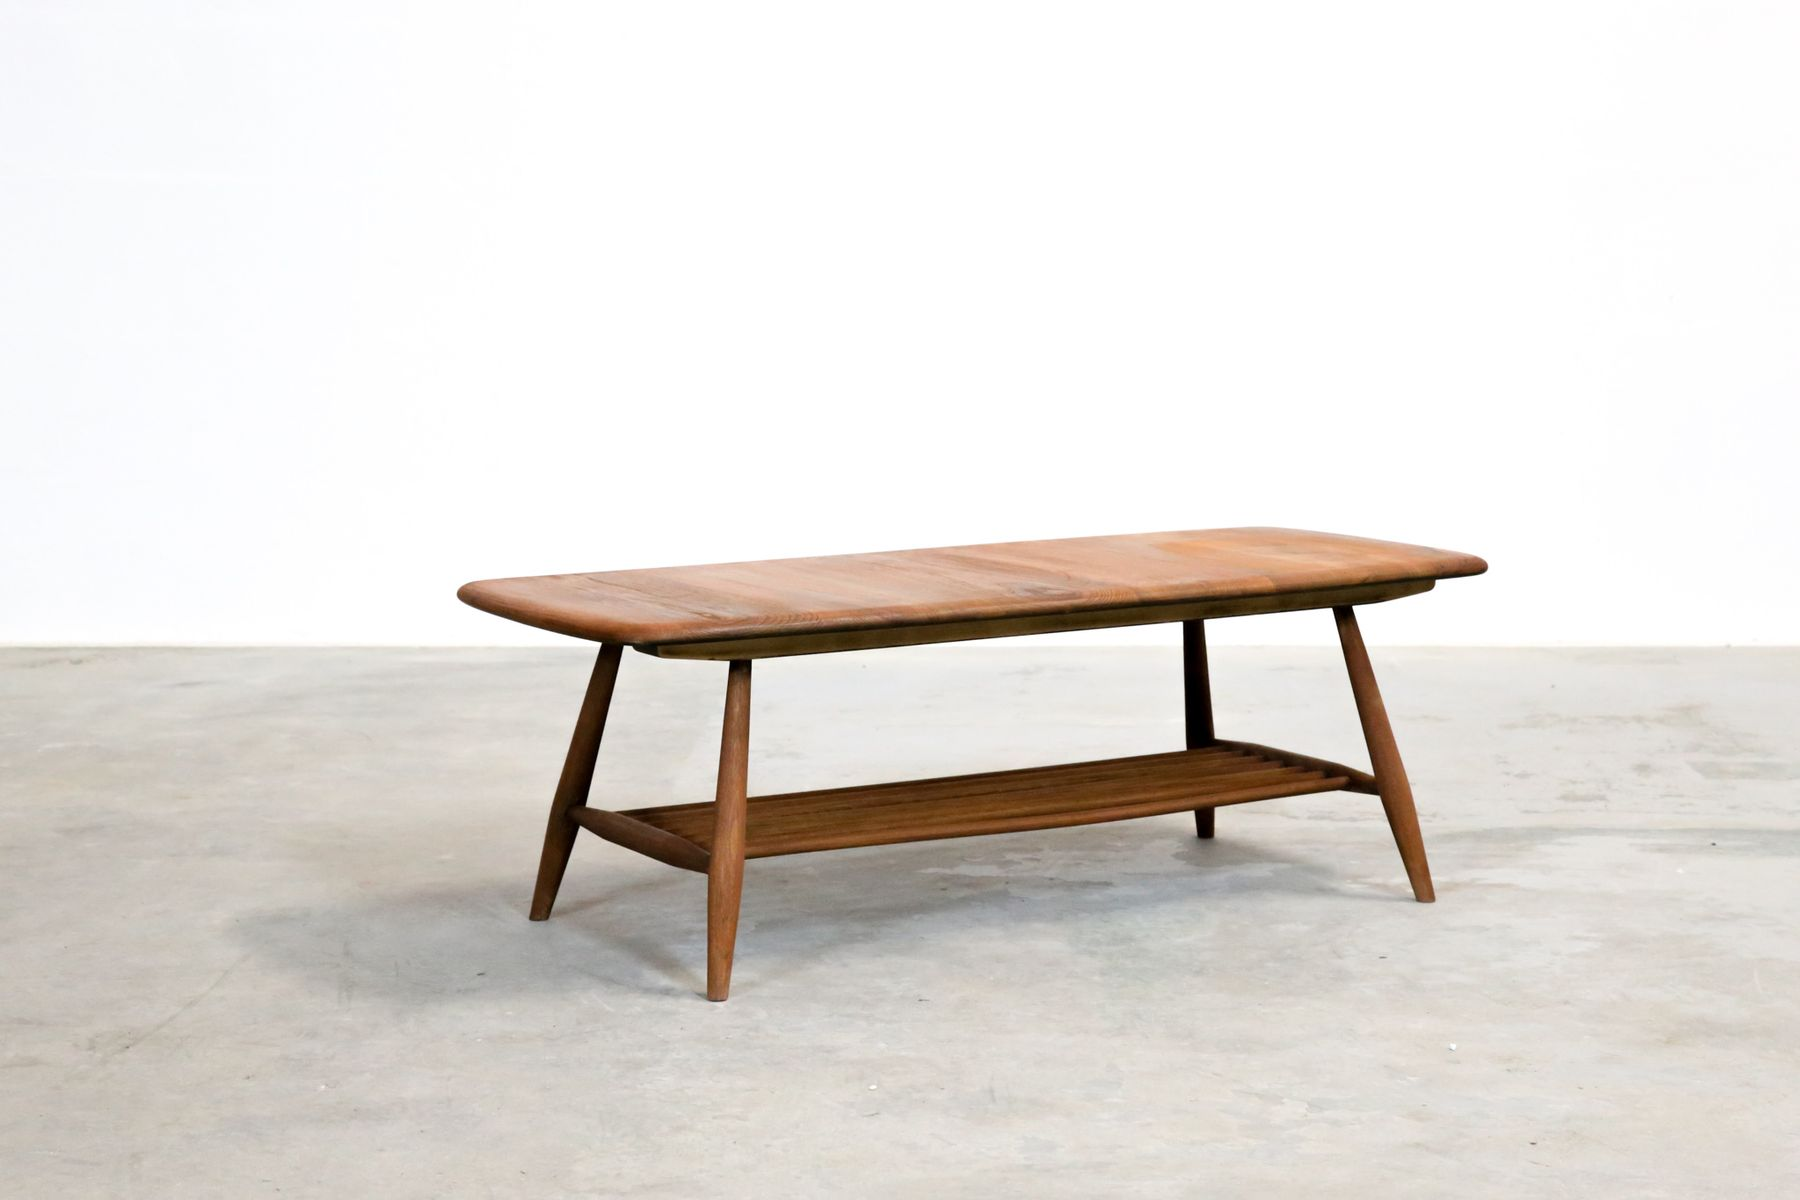 Oak beech coffee table by lucian ercolani for ercol - Table basse gigogne vintage ...